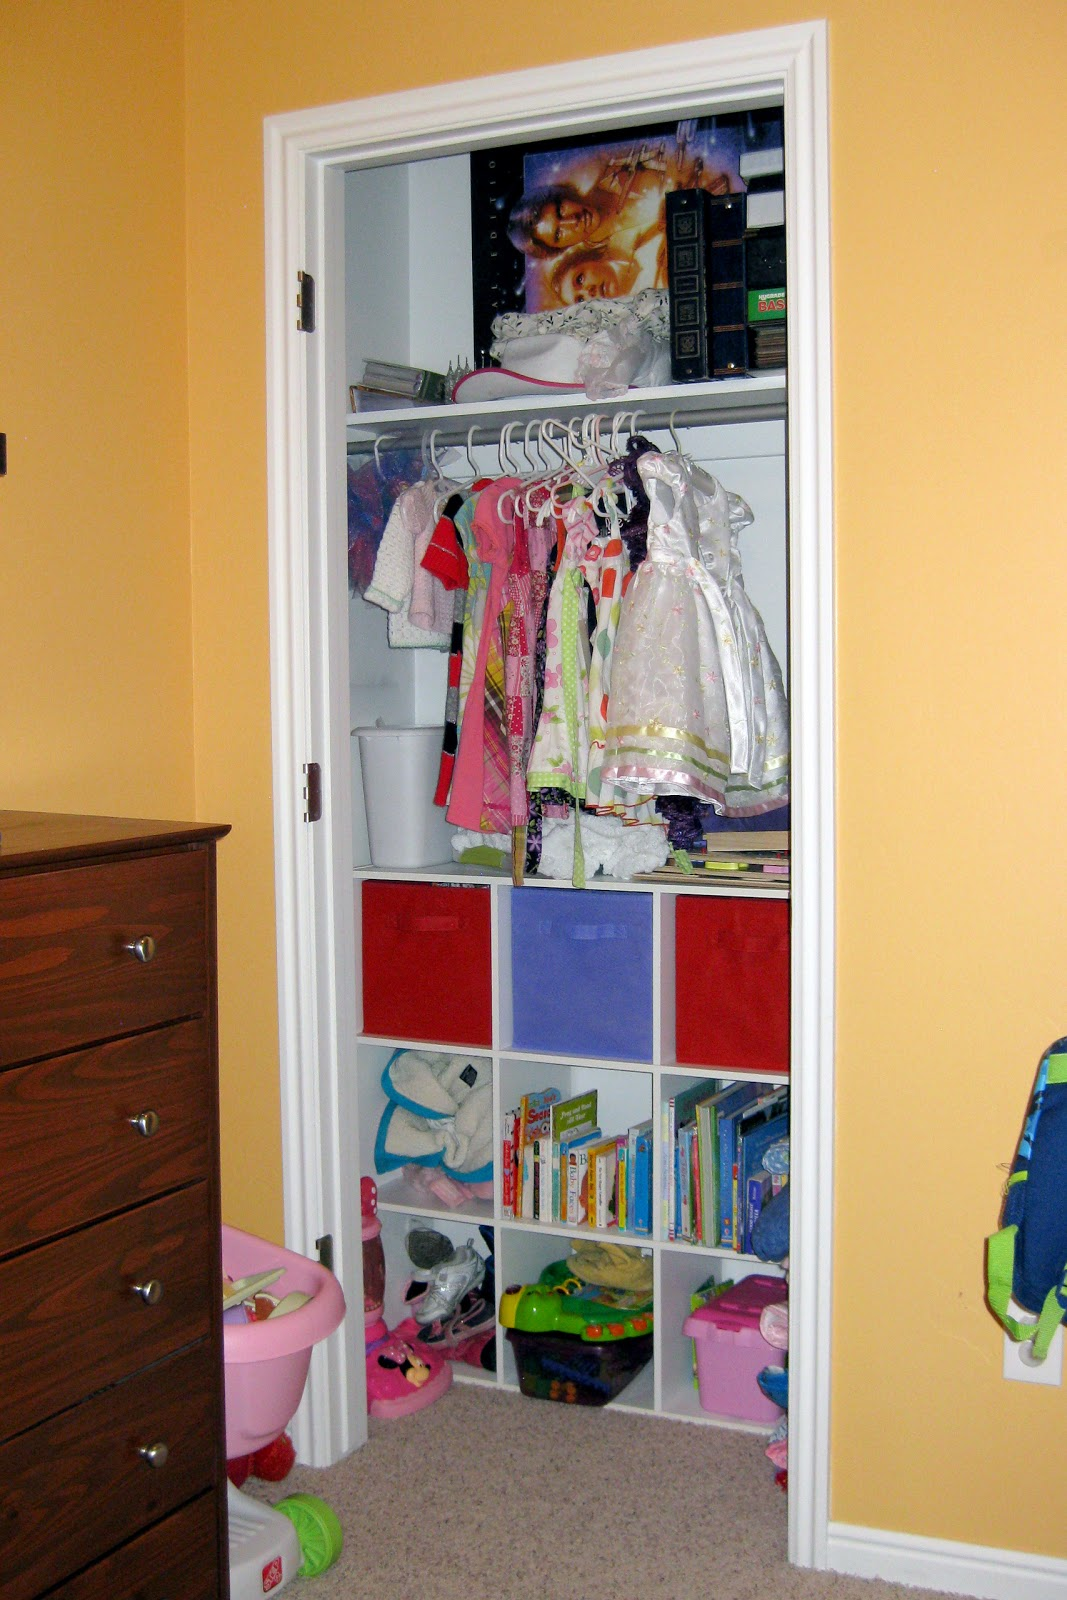 Pretty distressed guest post five space saving ideas for - Space saving closet ideas ...